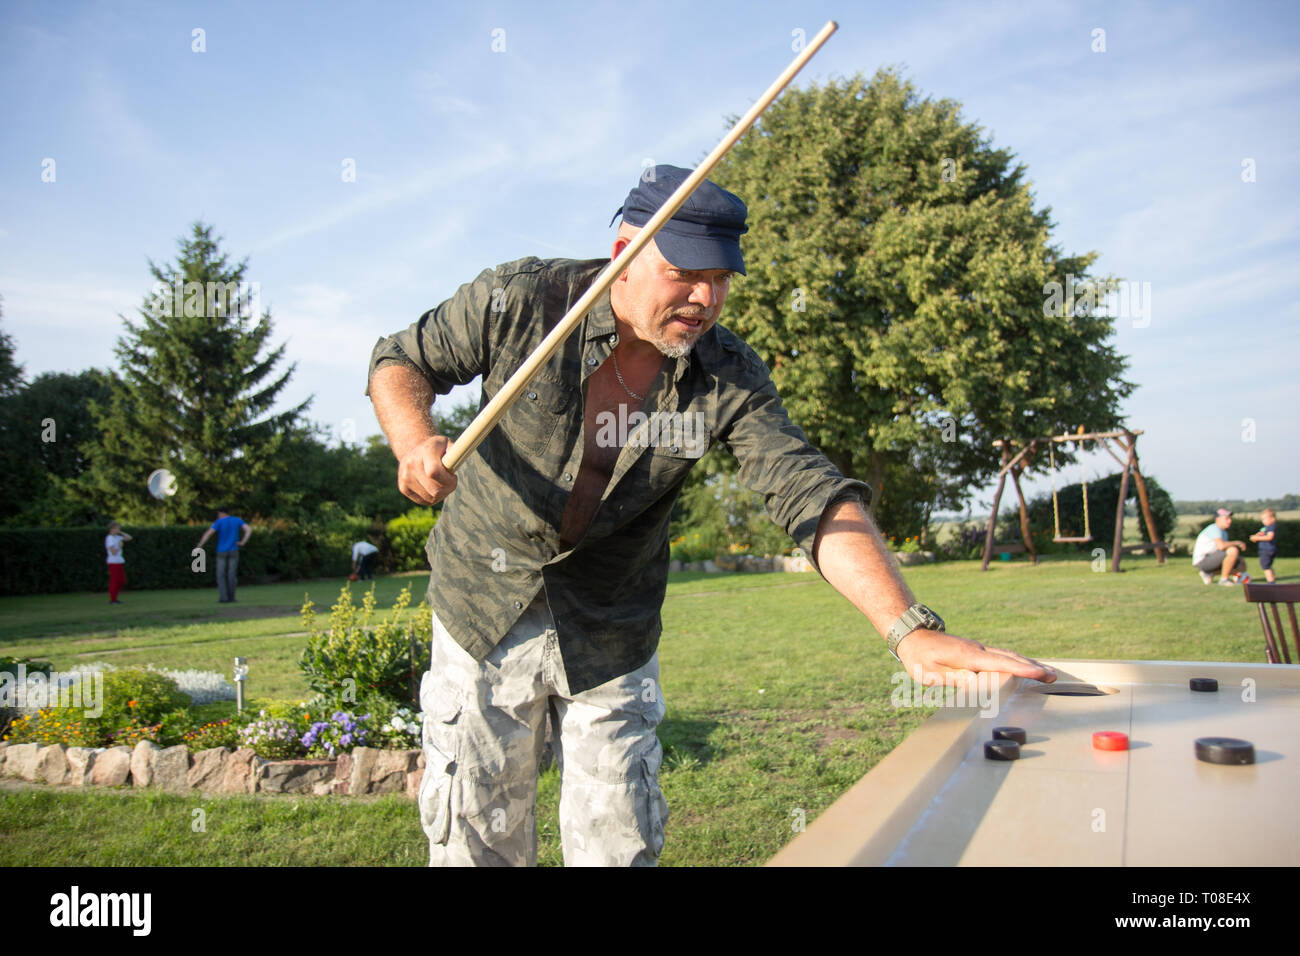 Man playing Novuss in outdoors - Stock Image